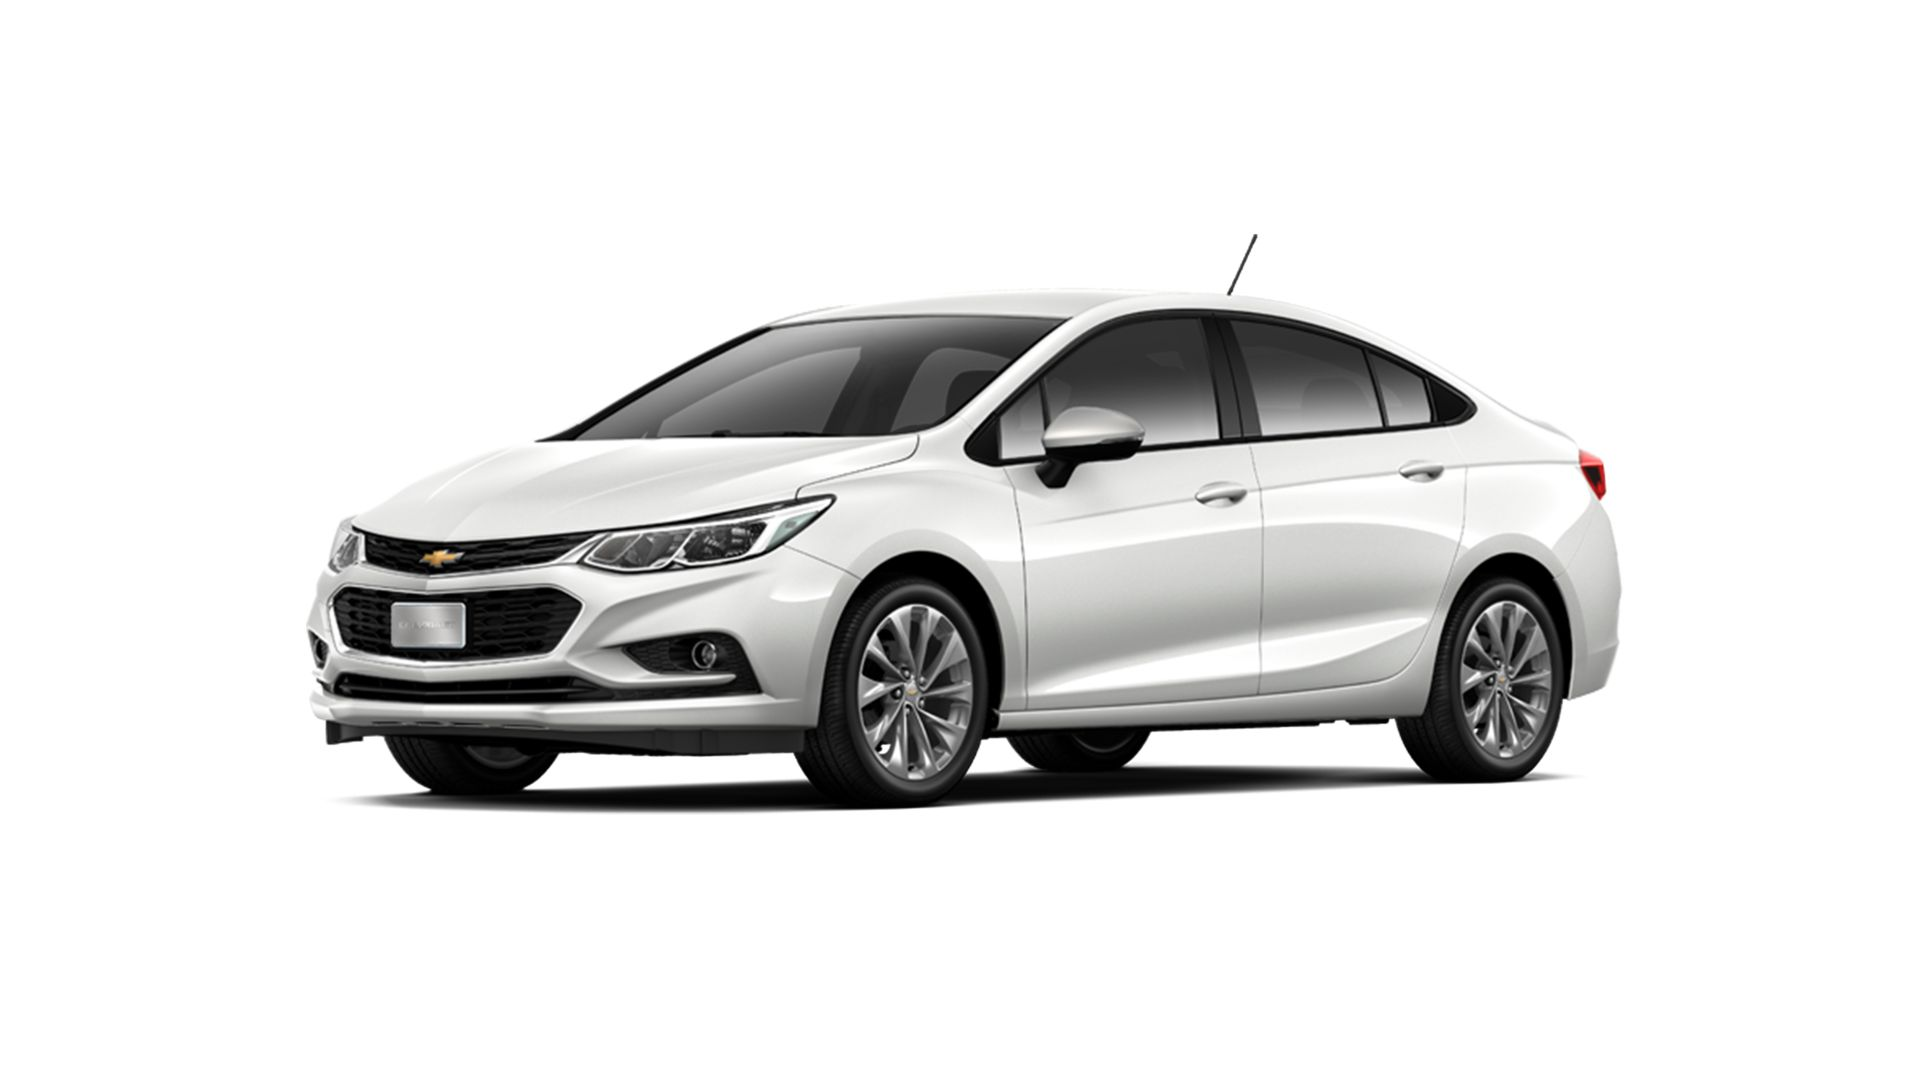 CHEVROLET CRUZE TURBO SEDAN LT 1.4 2019